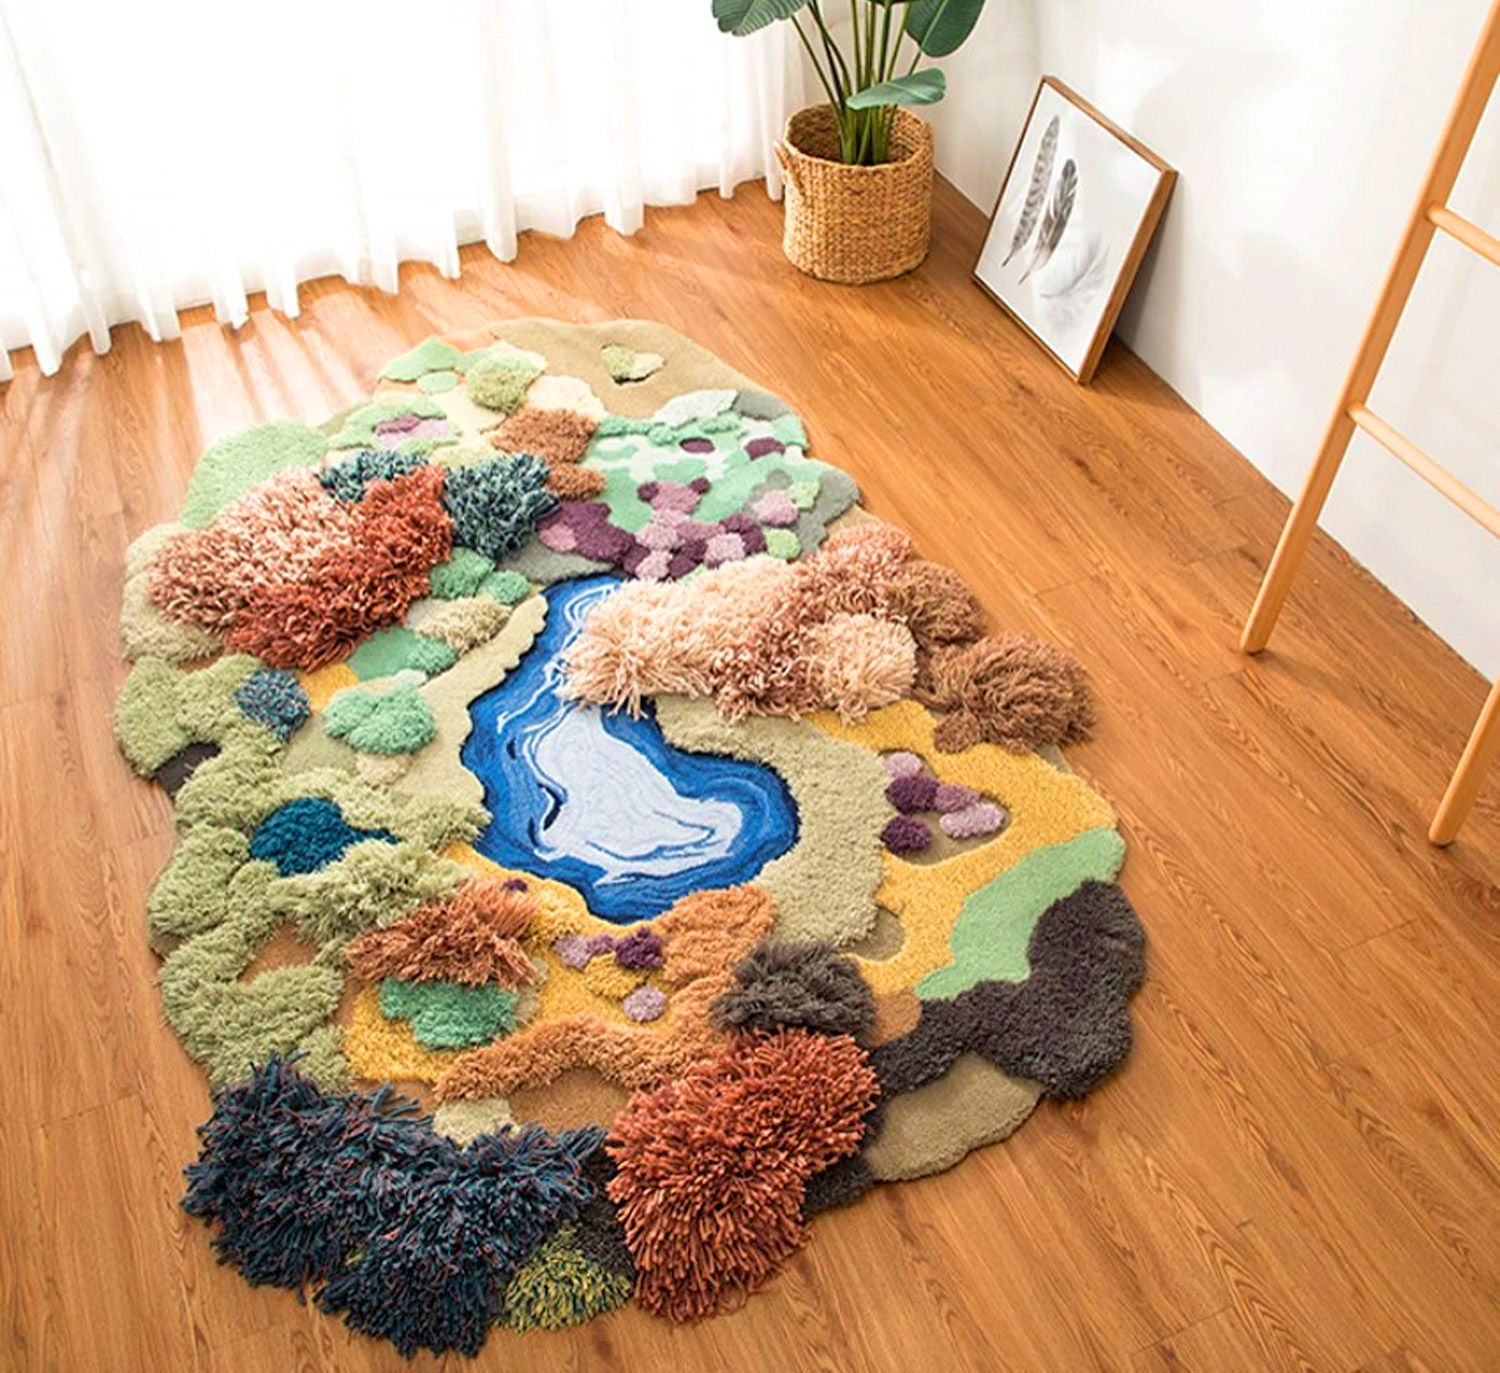 These Super Cute 'Little Forest' 3D Rugs Are The Ultimate